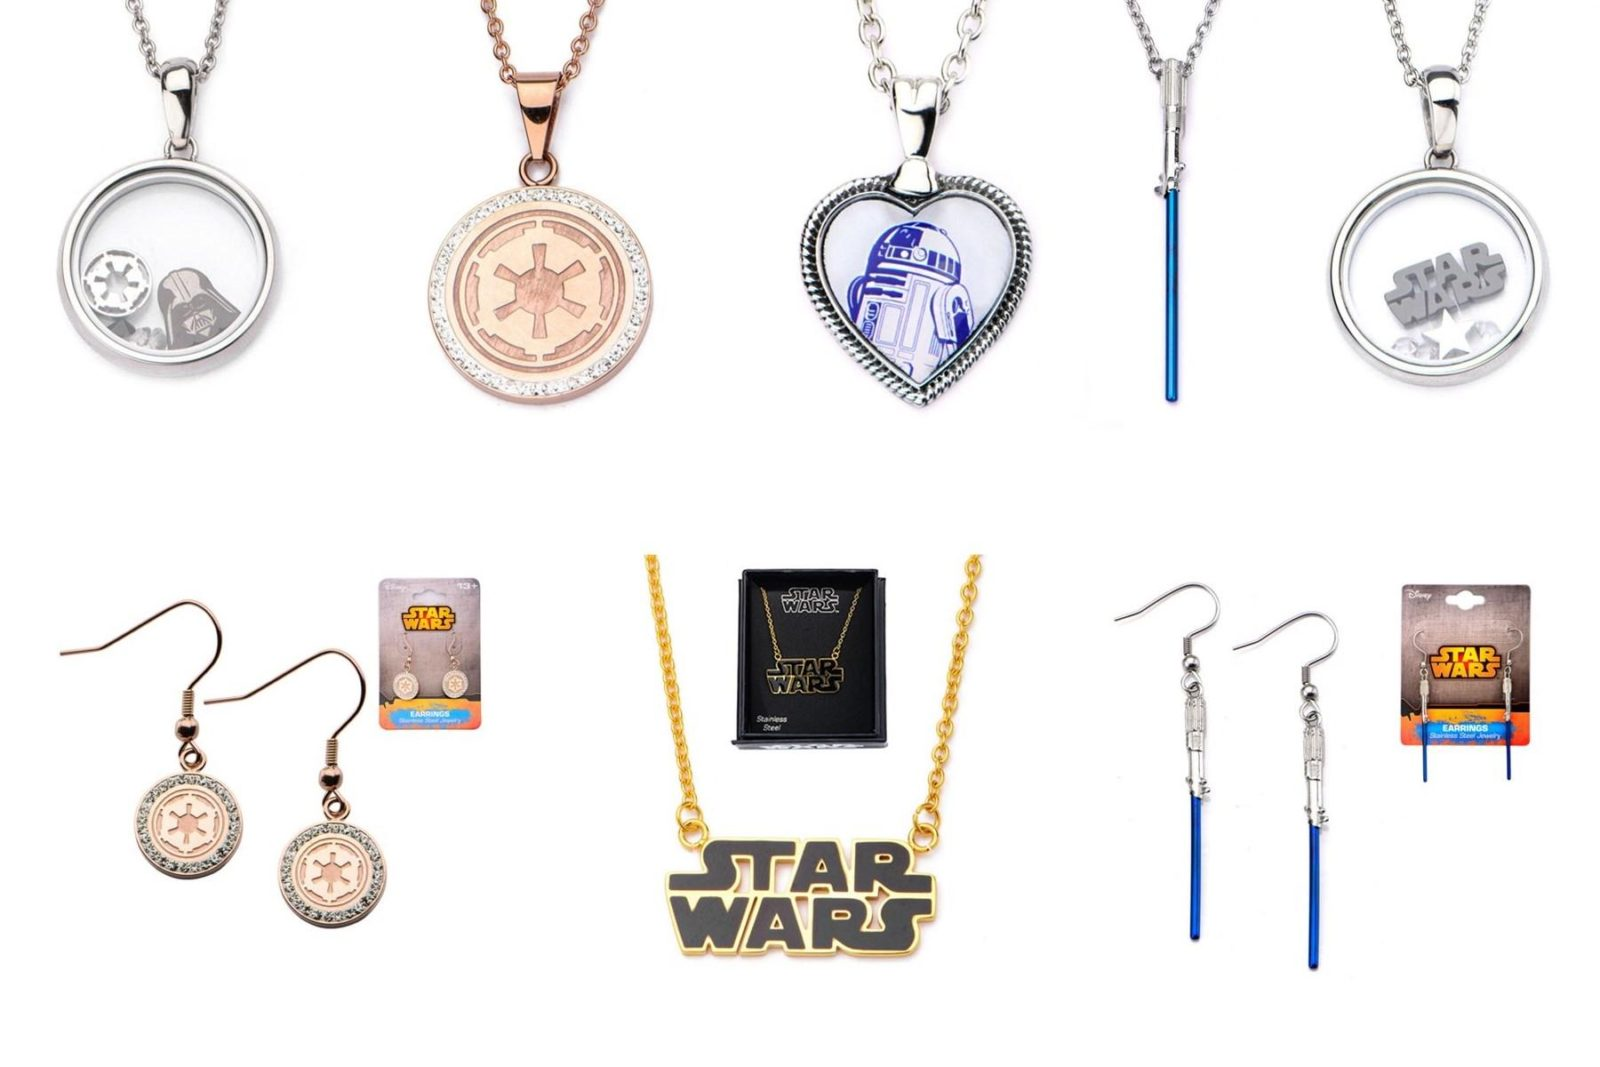 New jewelry at Entertainment Earth